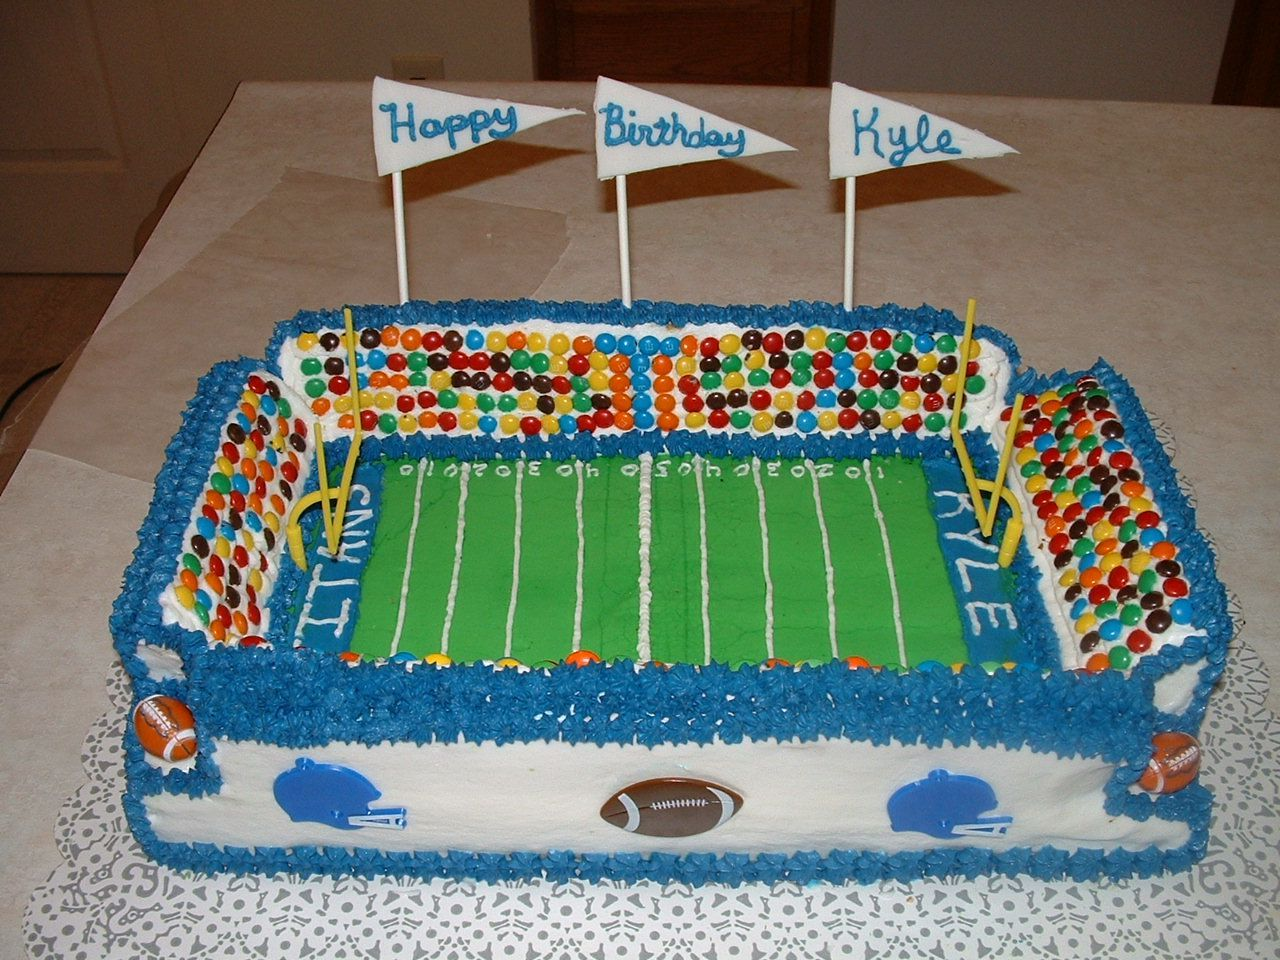 - This is a football stadium cake